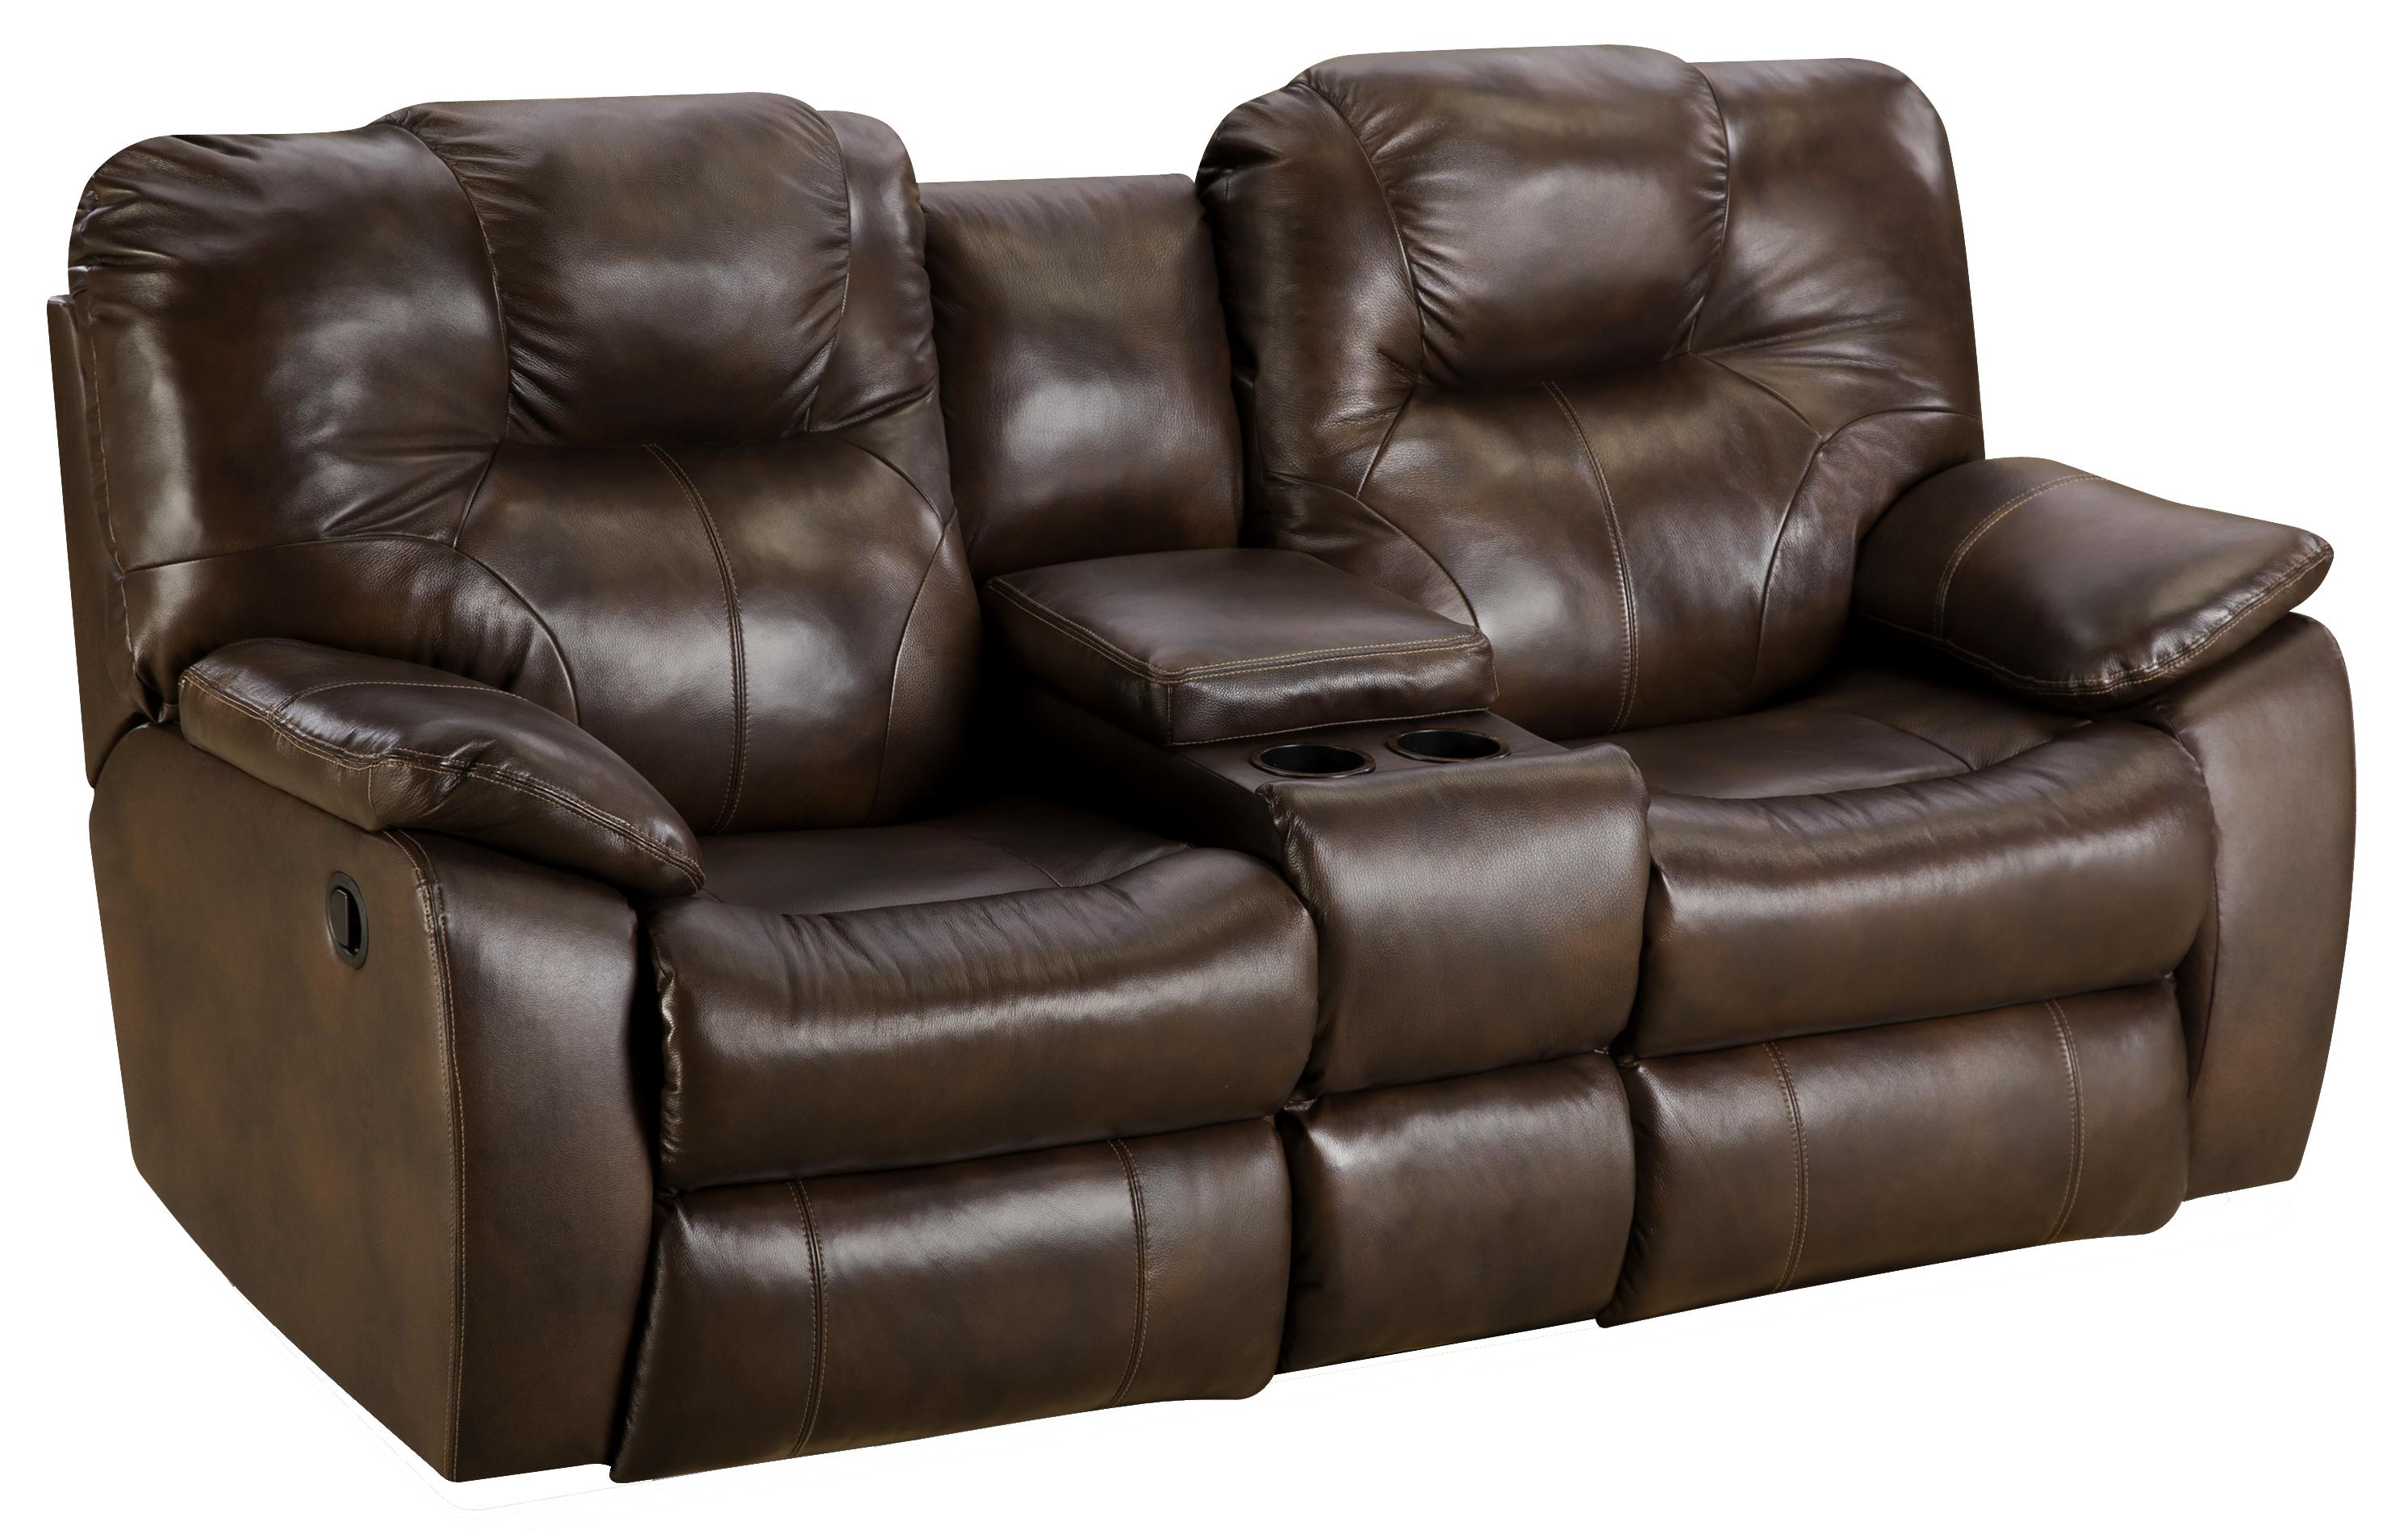 Beautiful By Southern Motion. Power Reclining Sofa With Console